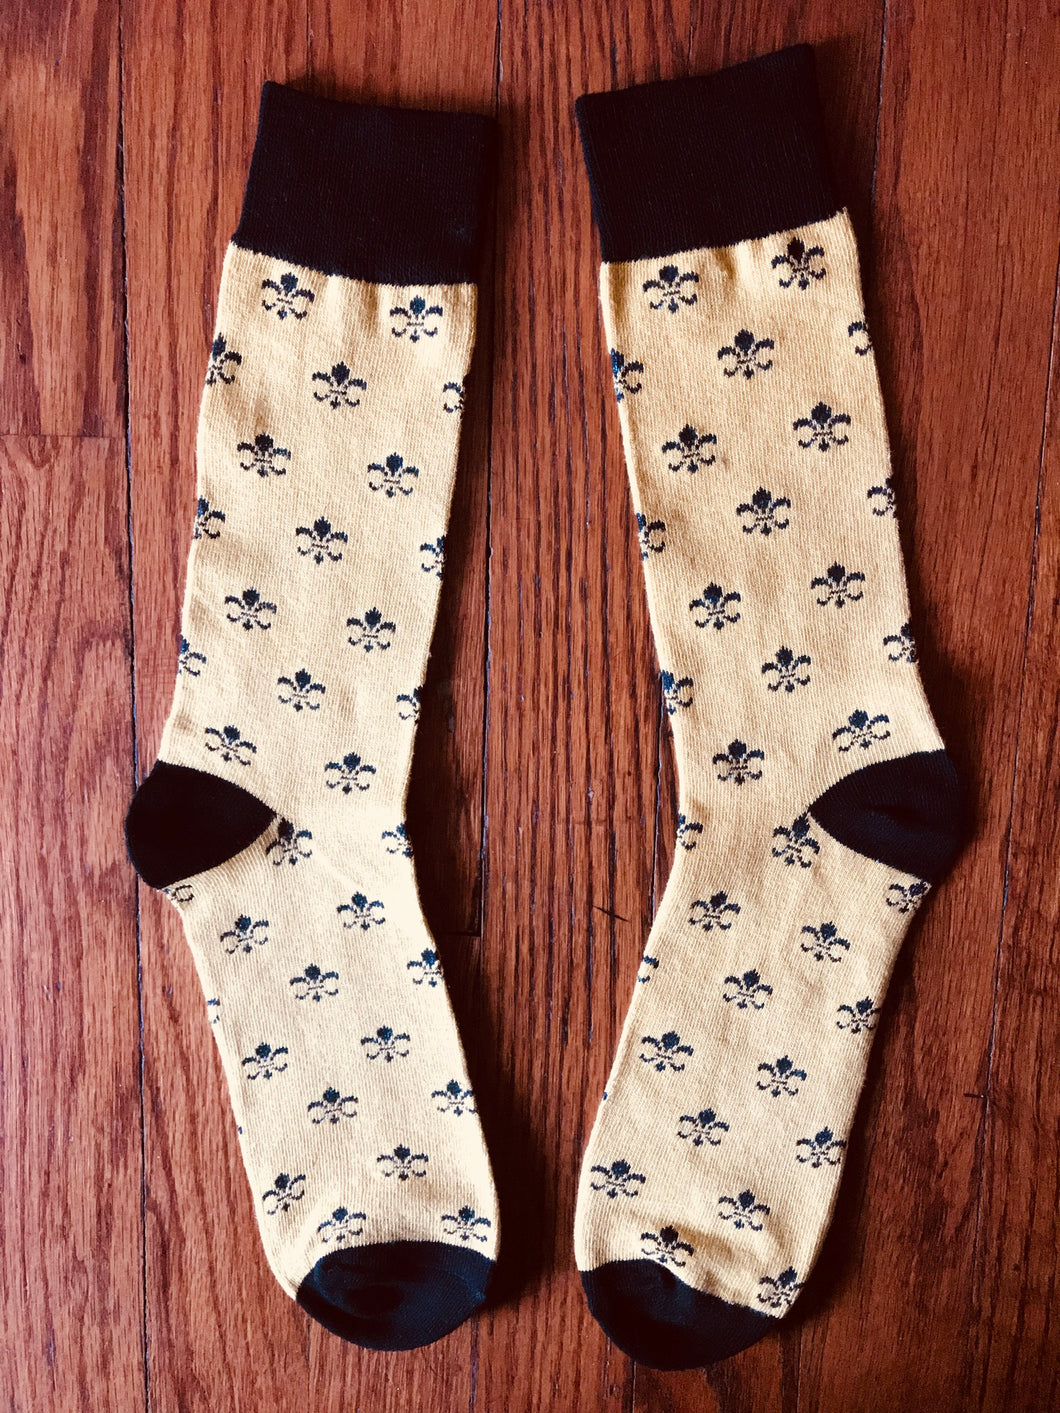 The Steward, Unisex Crew Socks